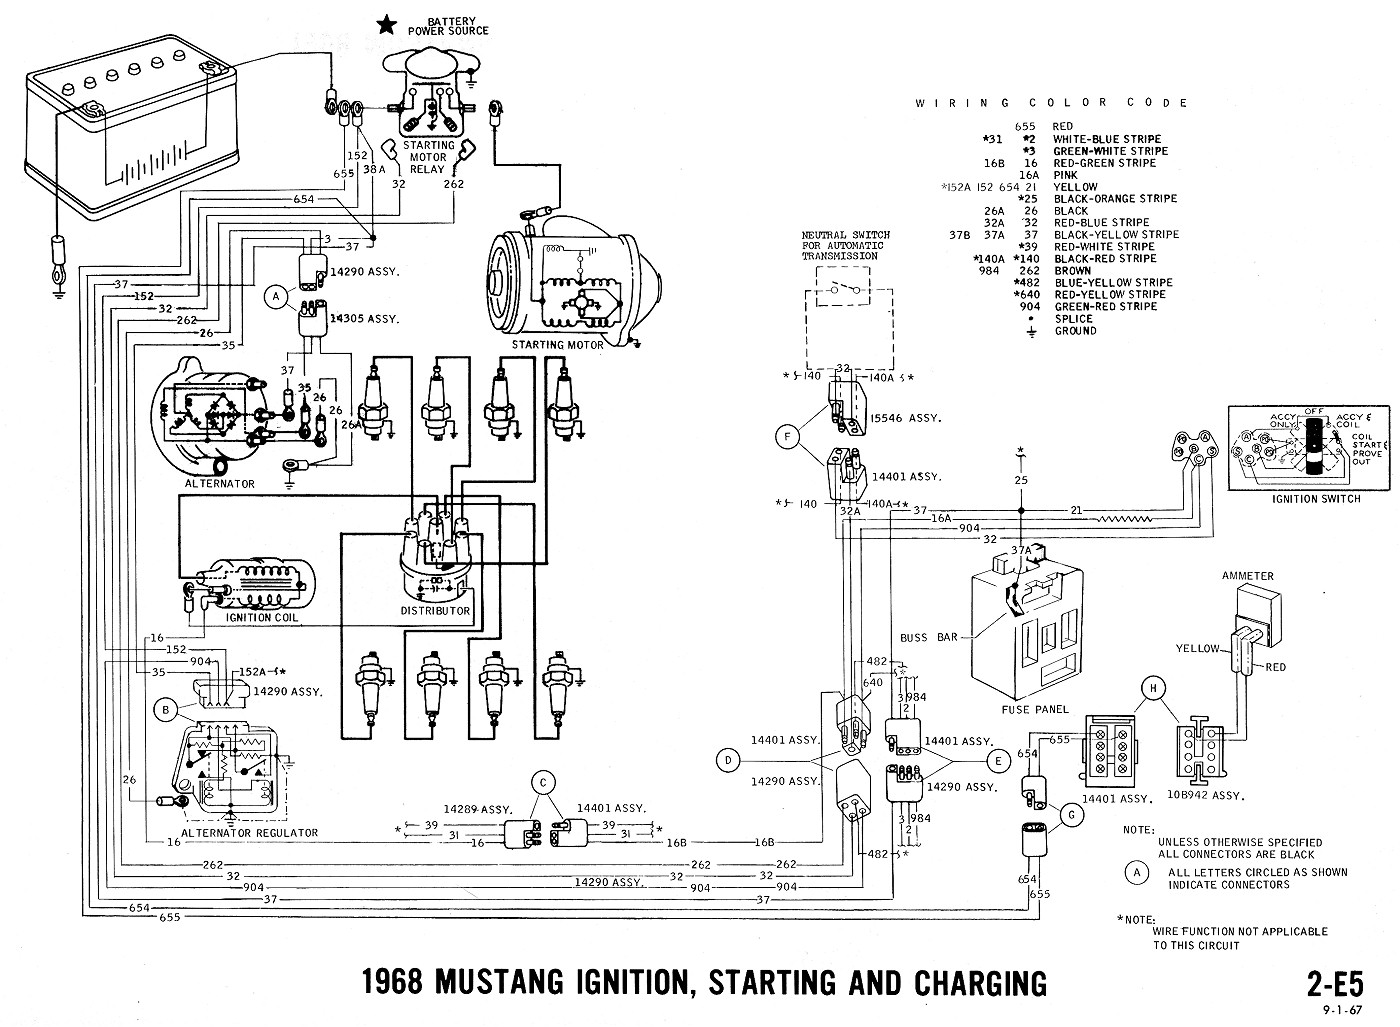 hight resolution of 1970 mustang coupe wiring diagram wiring diagram autovehicle wiring diagram 1970 mustang coup